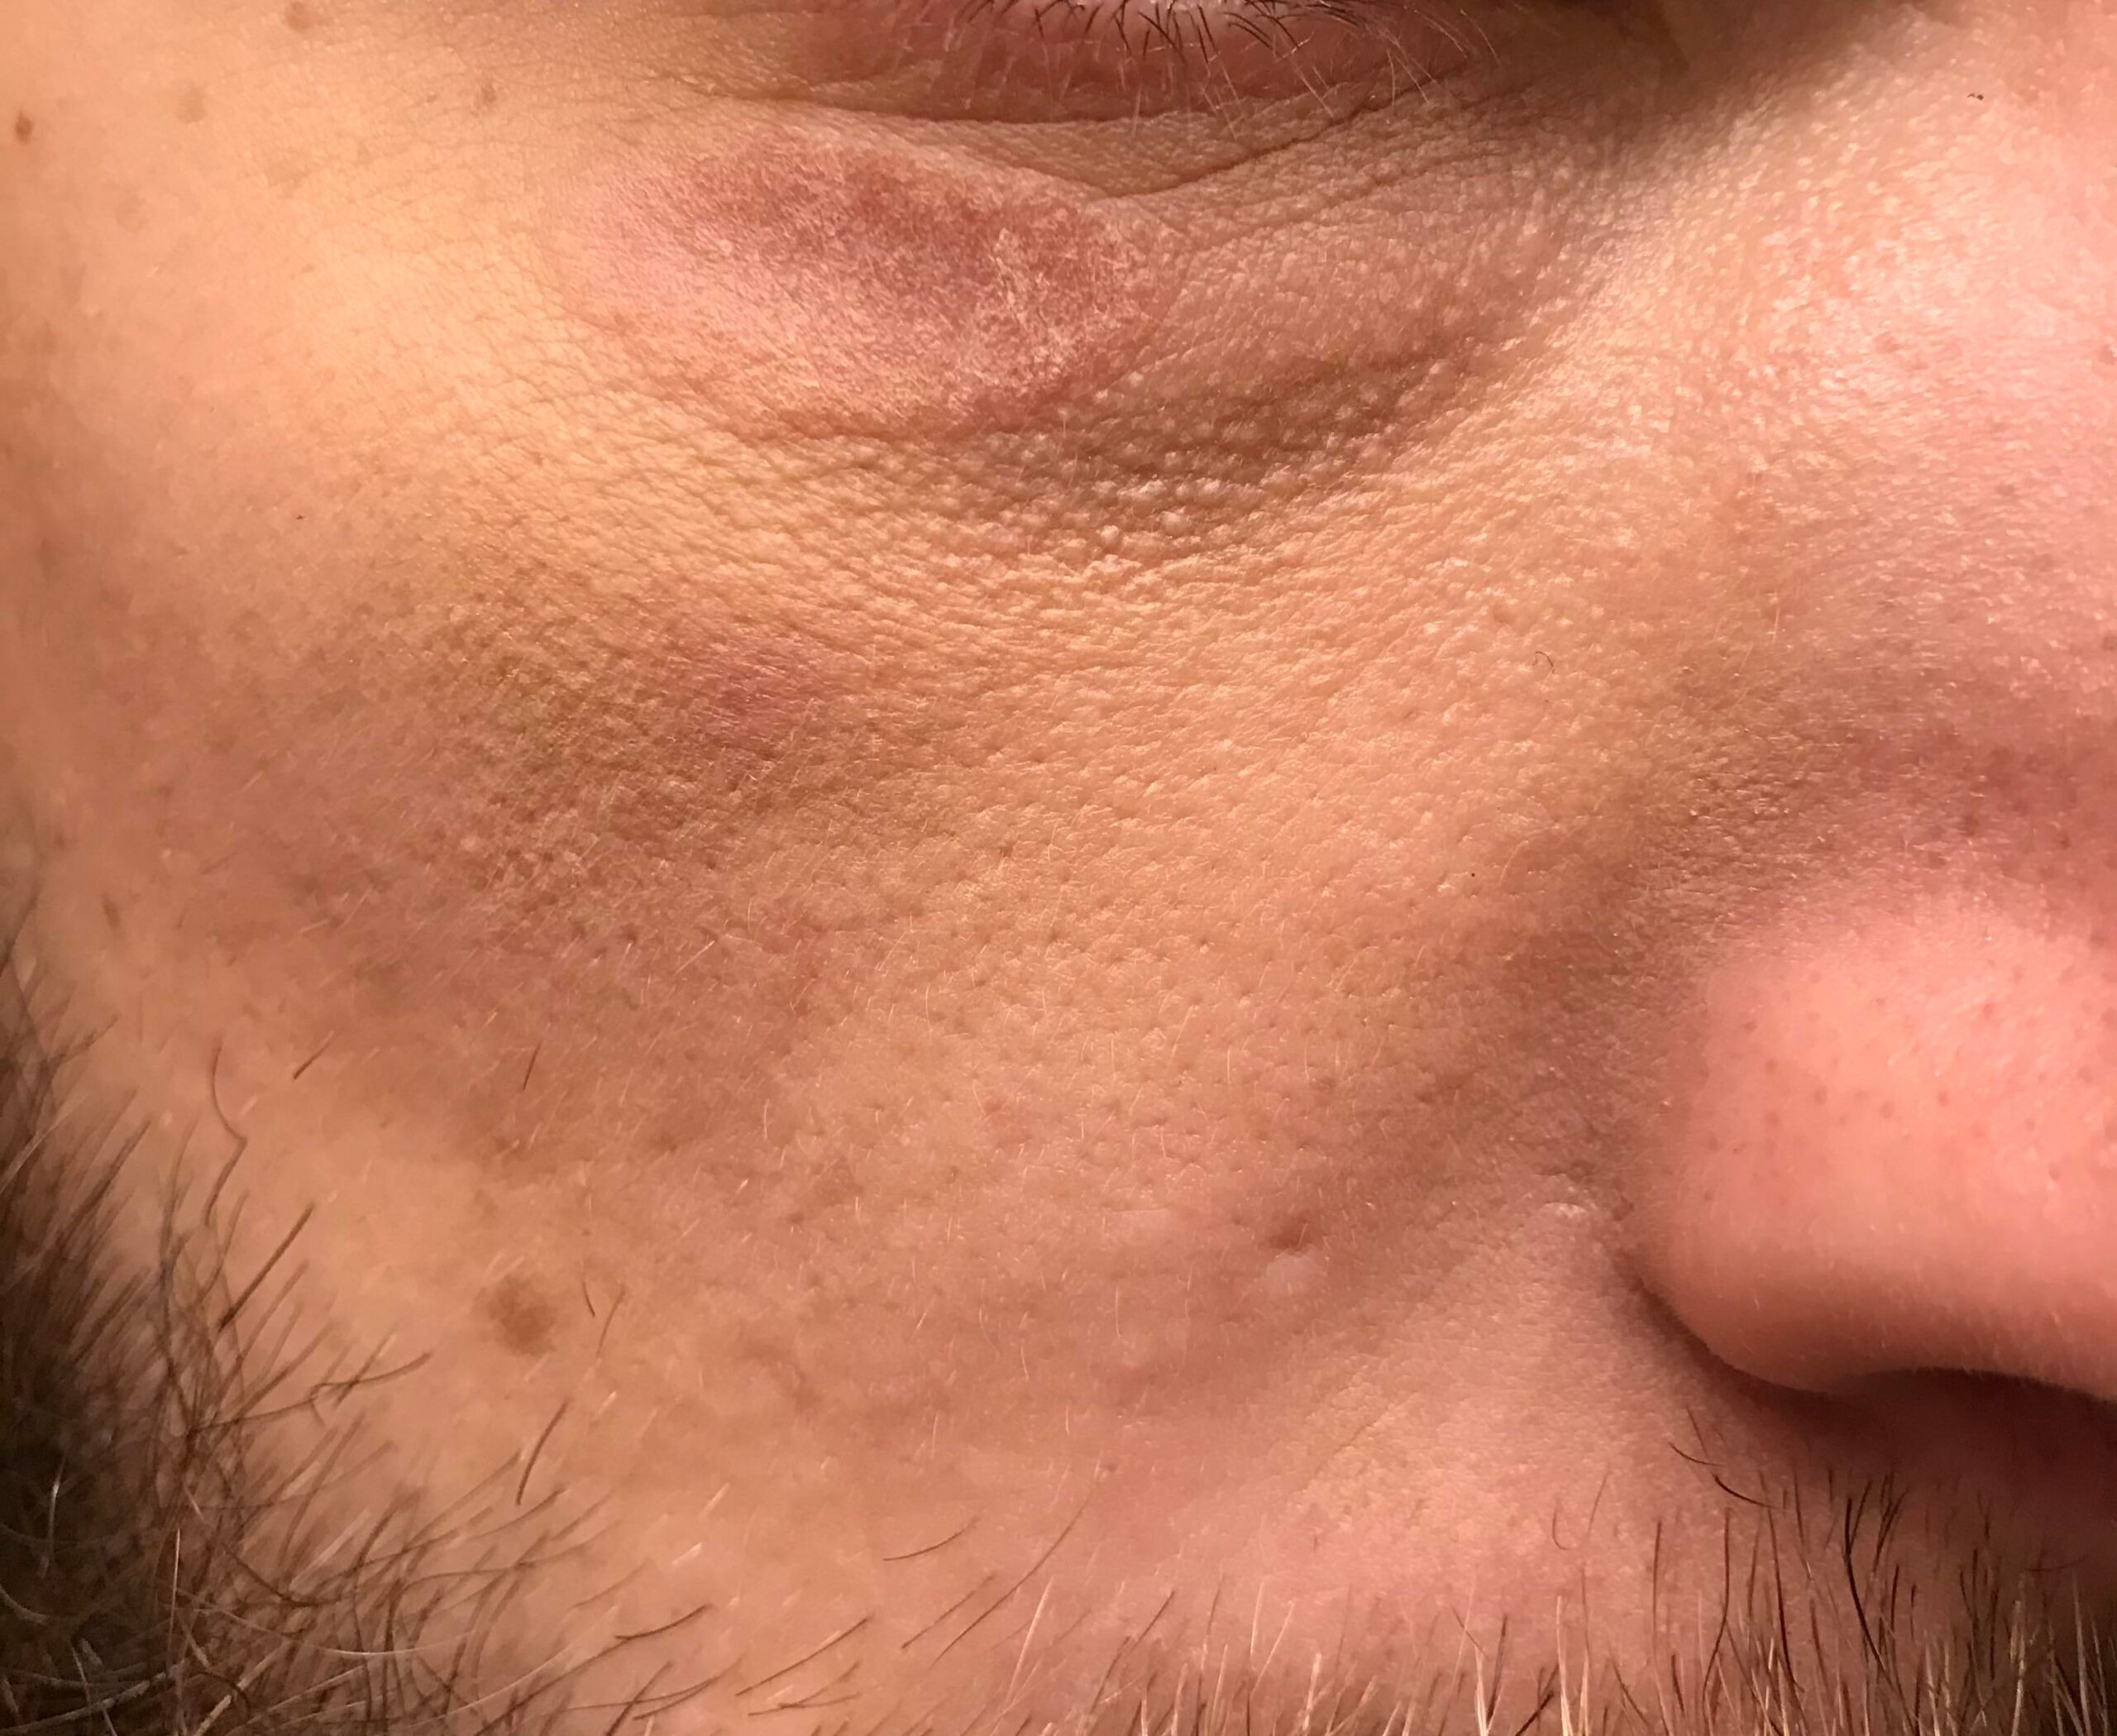 [Skin concern] raised mark after hit under the eye a month ago. I used cicaplast and moisturizer. Is this mark permanent now? Anyway to fix?